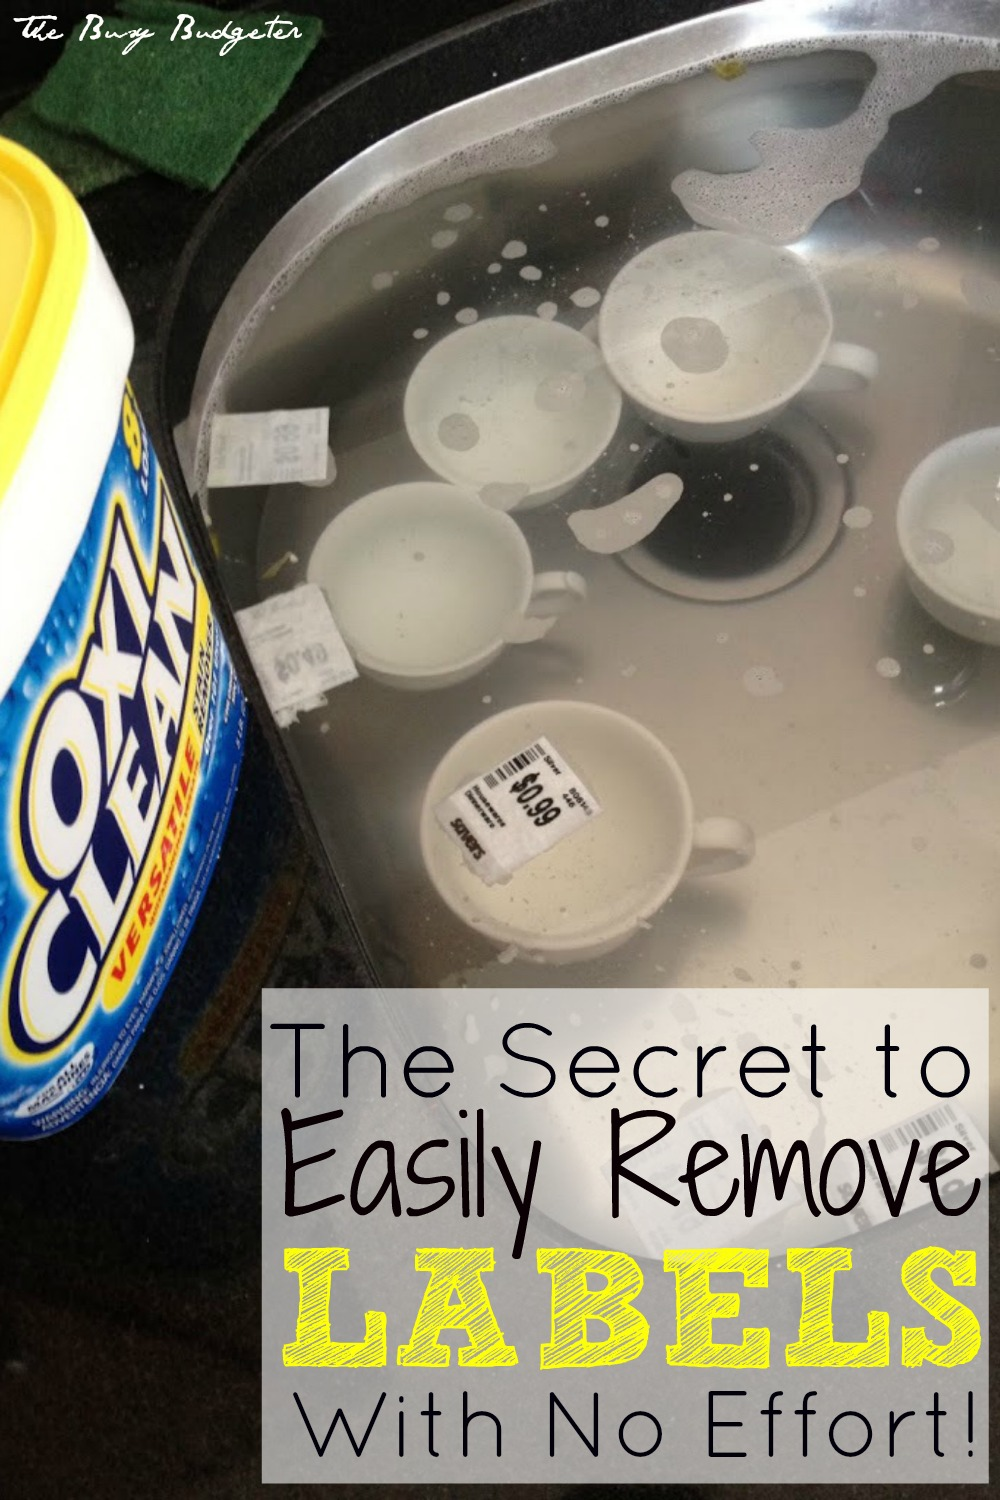 The secret to easily remove labels with no effort